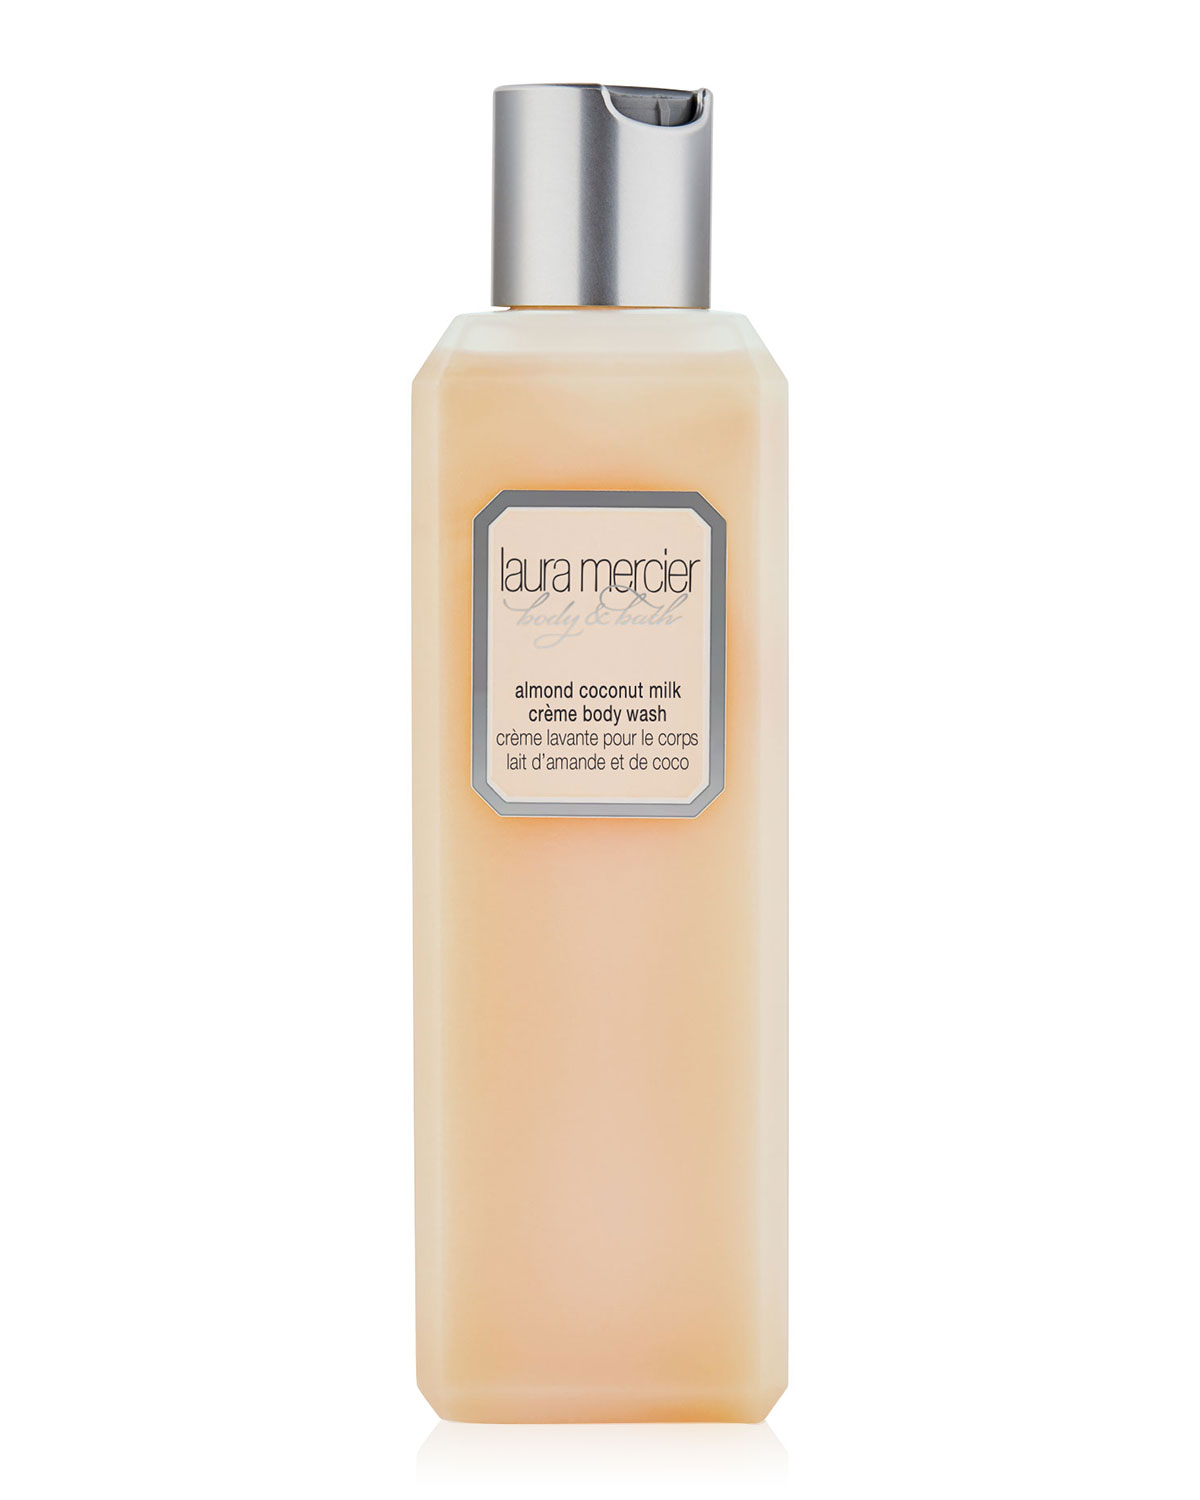 Almond Coconut Milk Creme Body Wash - Laura Mercier